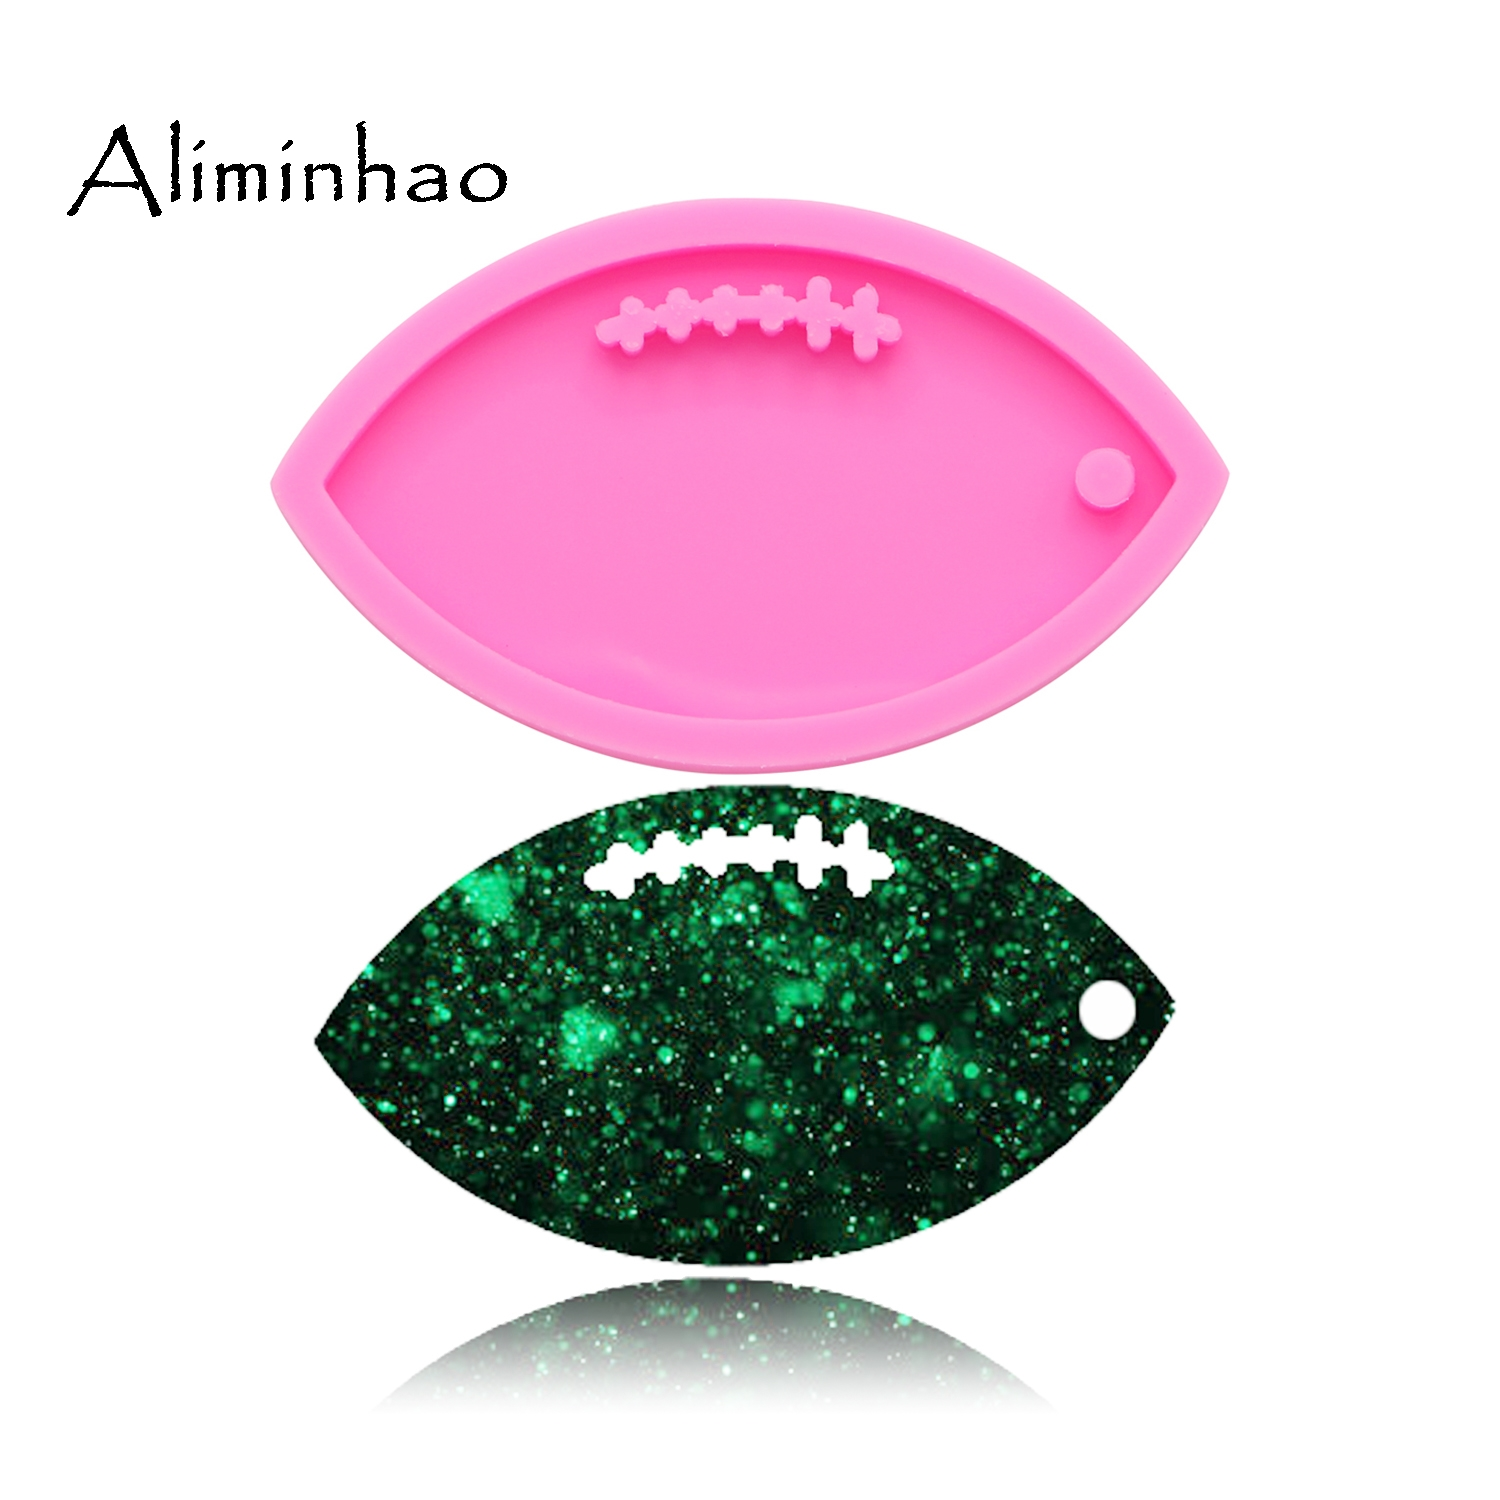 DY0090 Shiny Football Keychains Mold Clay DIY Jewelry Making Glitter Epoxy Silicone Resin Mold